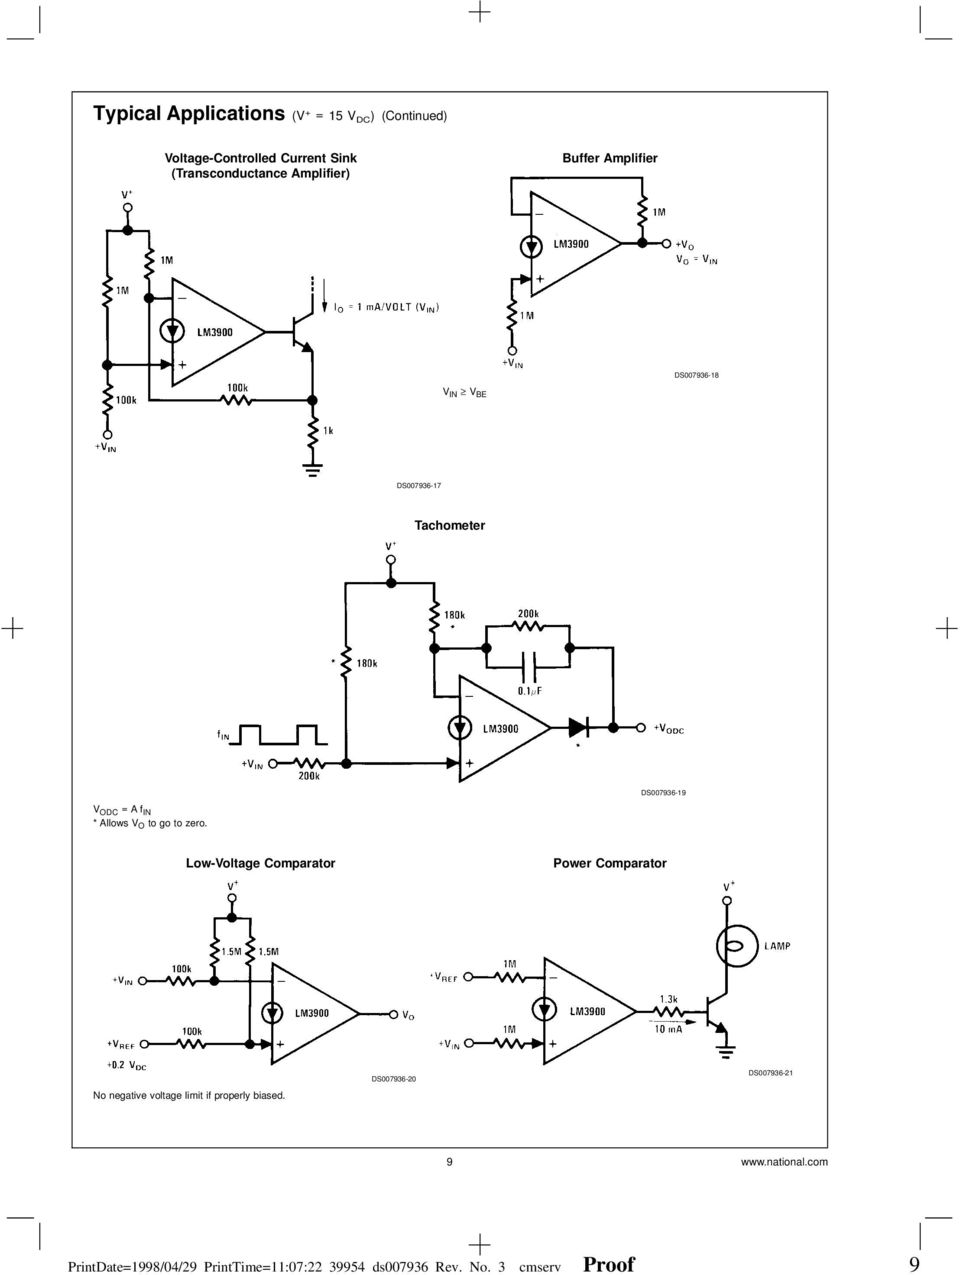 Lm2900lm3301lm3900 Lm2900 Lm3900 Lm3301 Quad Amplifiers Channel Audio Mixer Circuit Using Simple Schematic Diagram Low Voltage Comparator Power No Negative Limit If Properly Biased